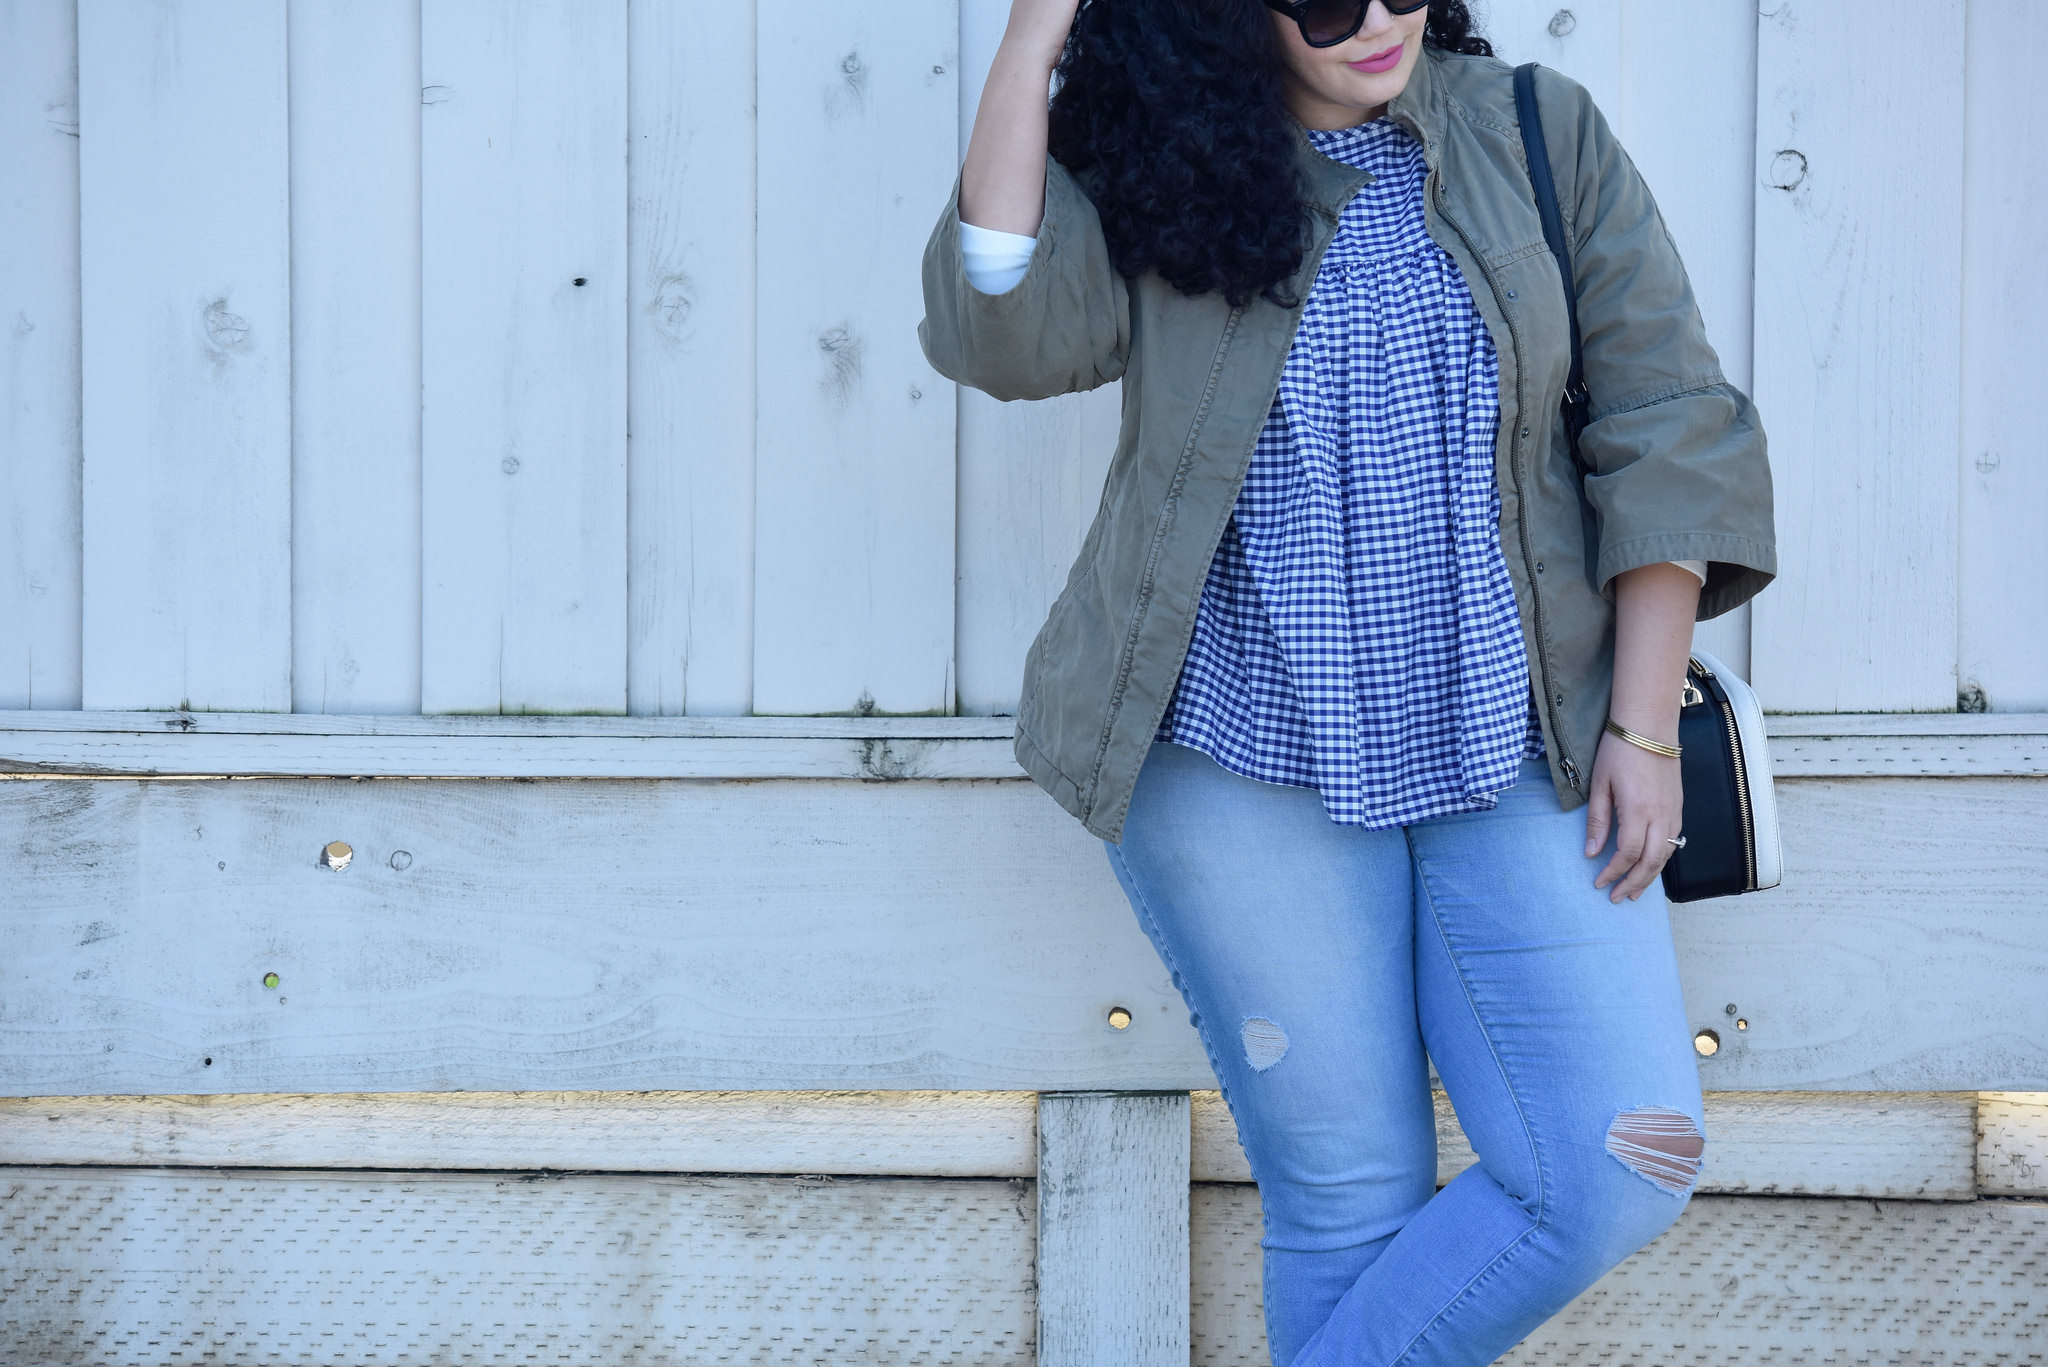 How to make Gingham Wearable for Everyday